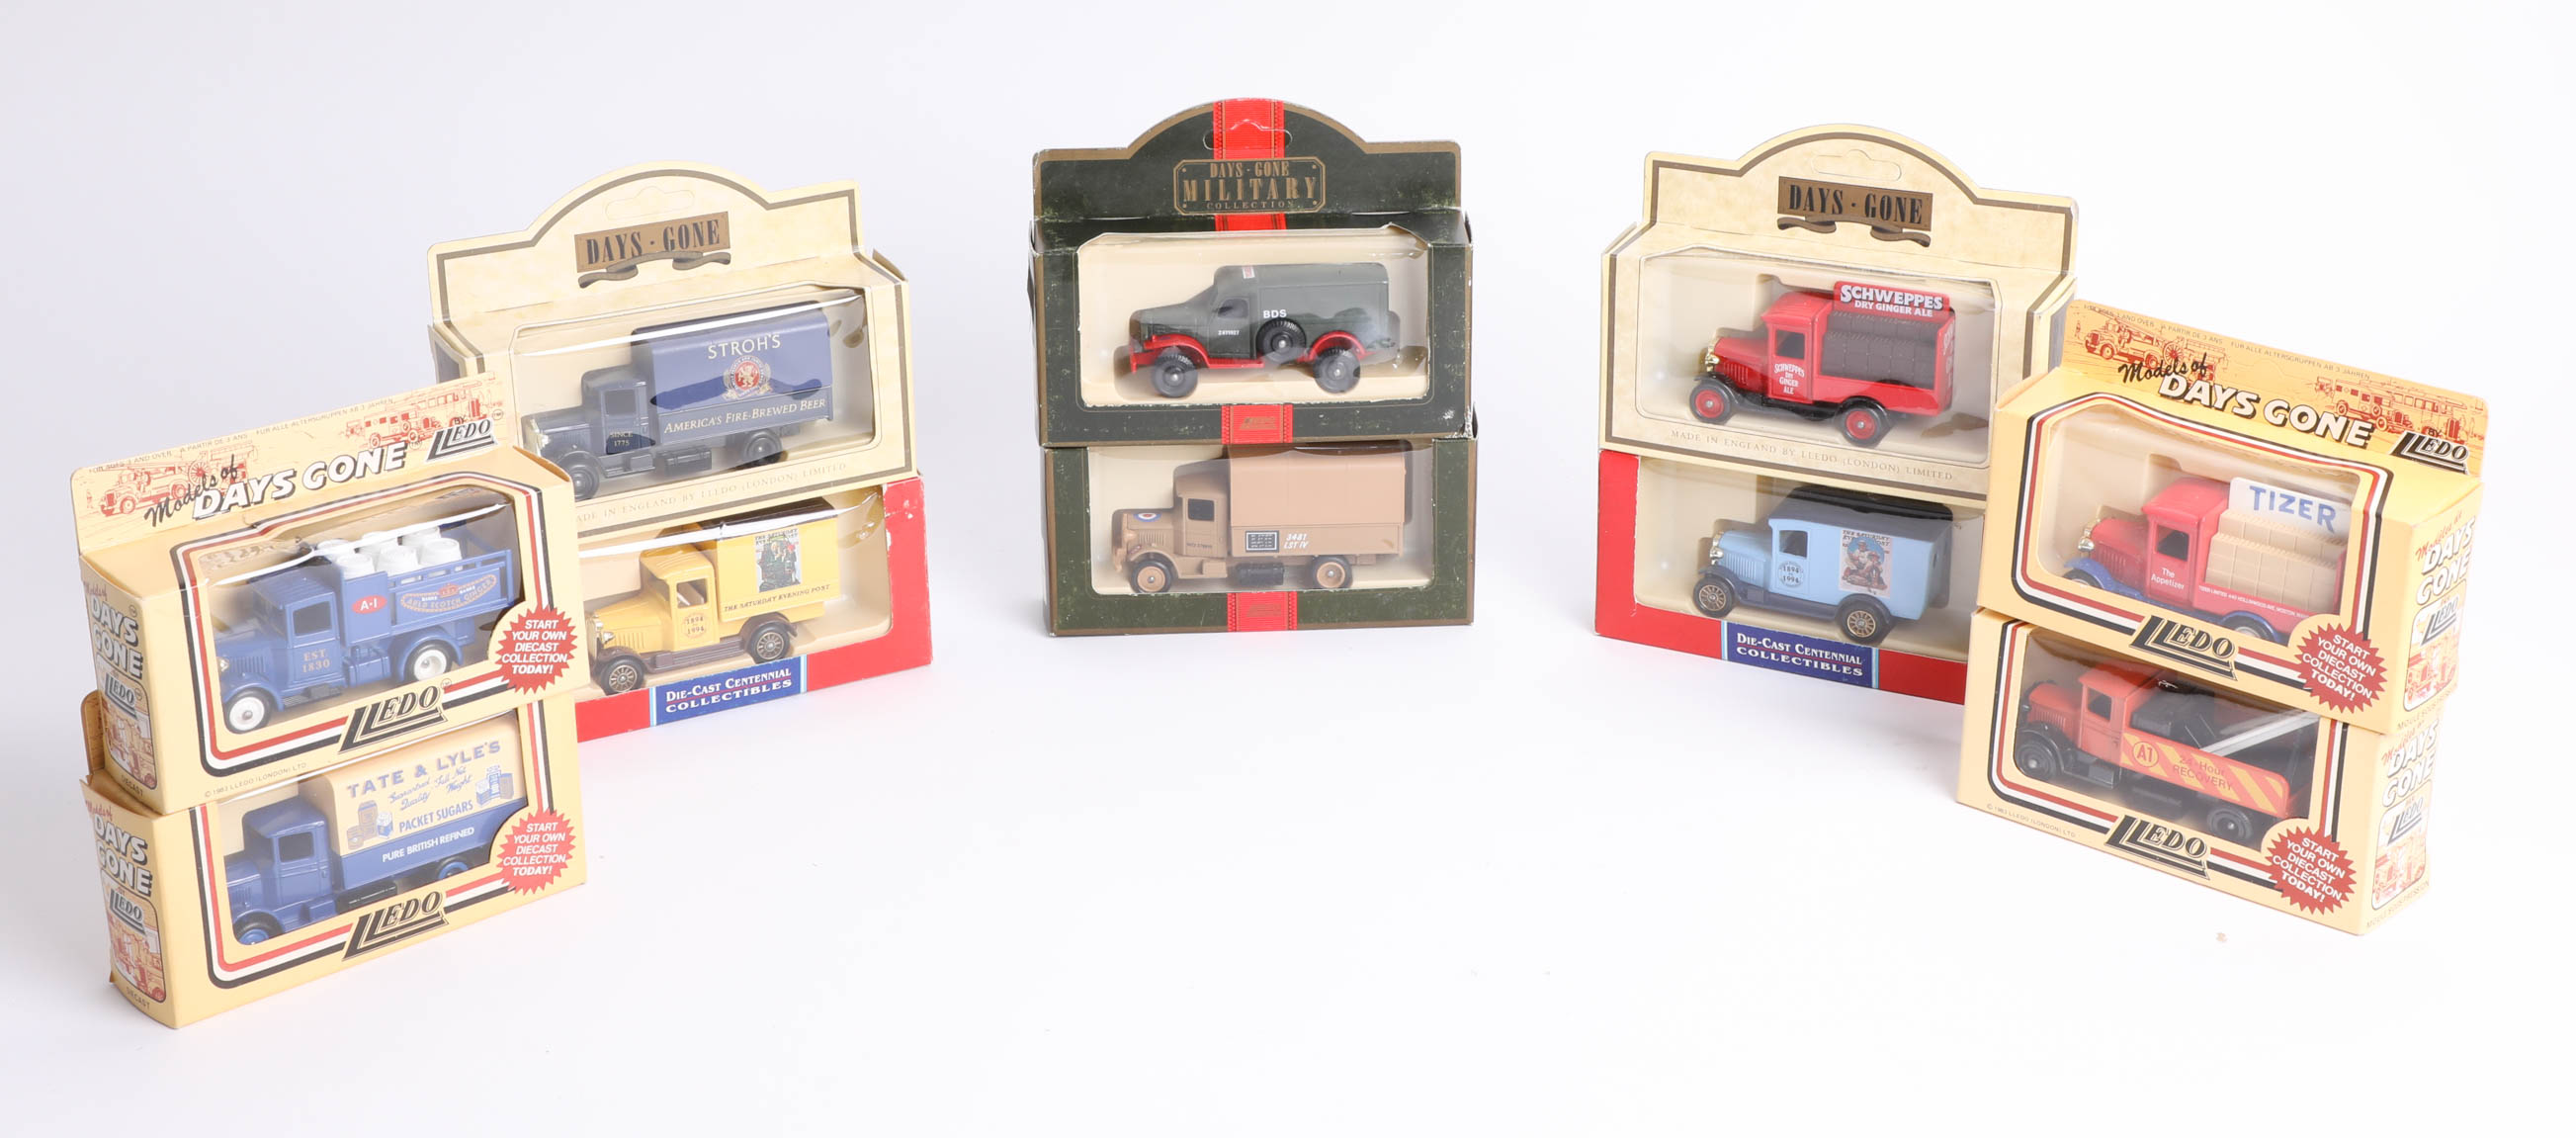 Lot 037 - Sixty-one 'Days Gone' diecast cars and two 'Normal Rockwell's 100th Anniversary' diecast cars. (63)